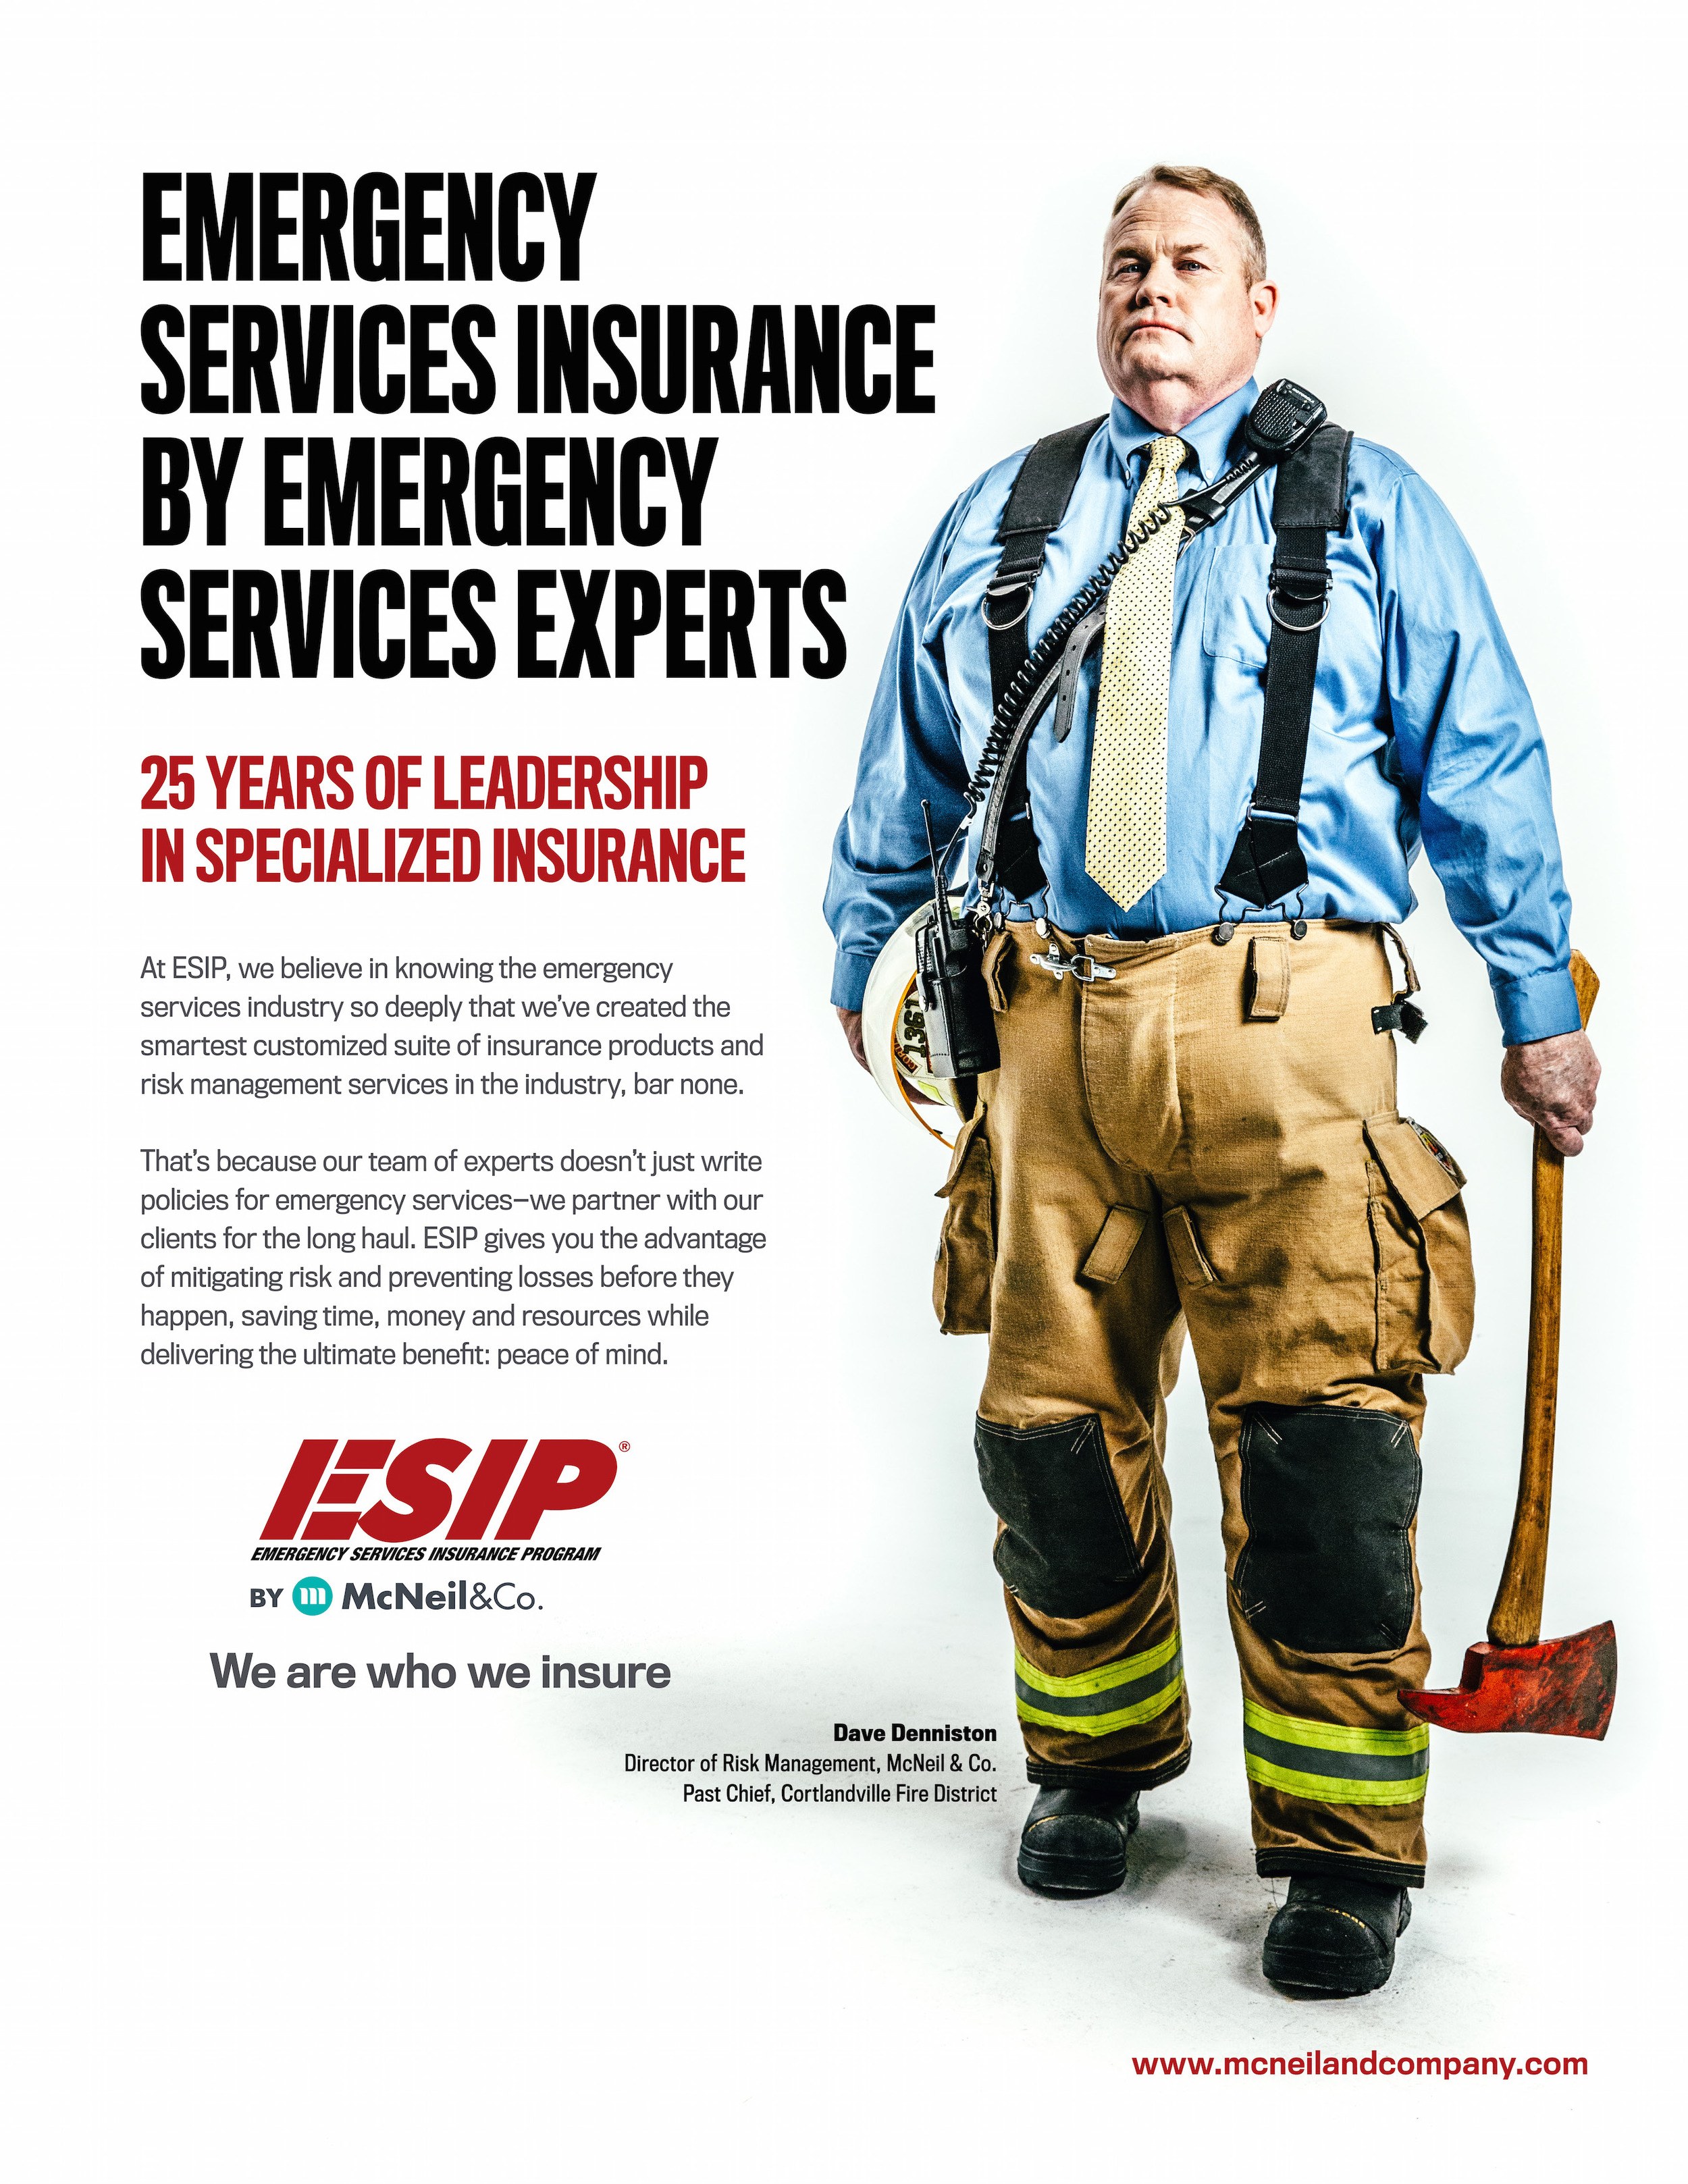 McNeil & Co ESIP program campaign. Agency: Phil & Co, Production: DECON